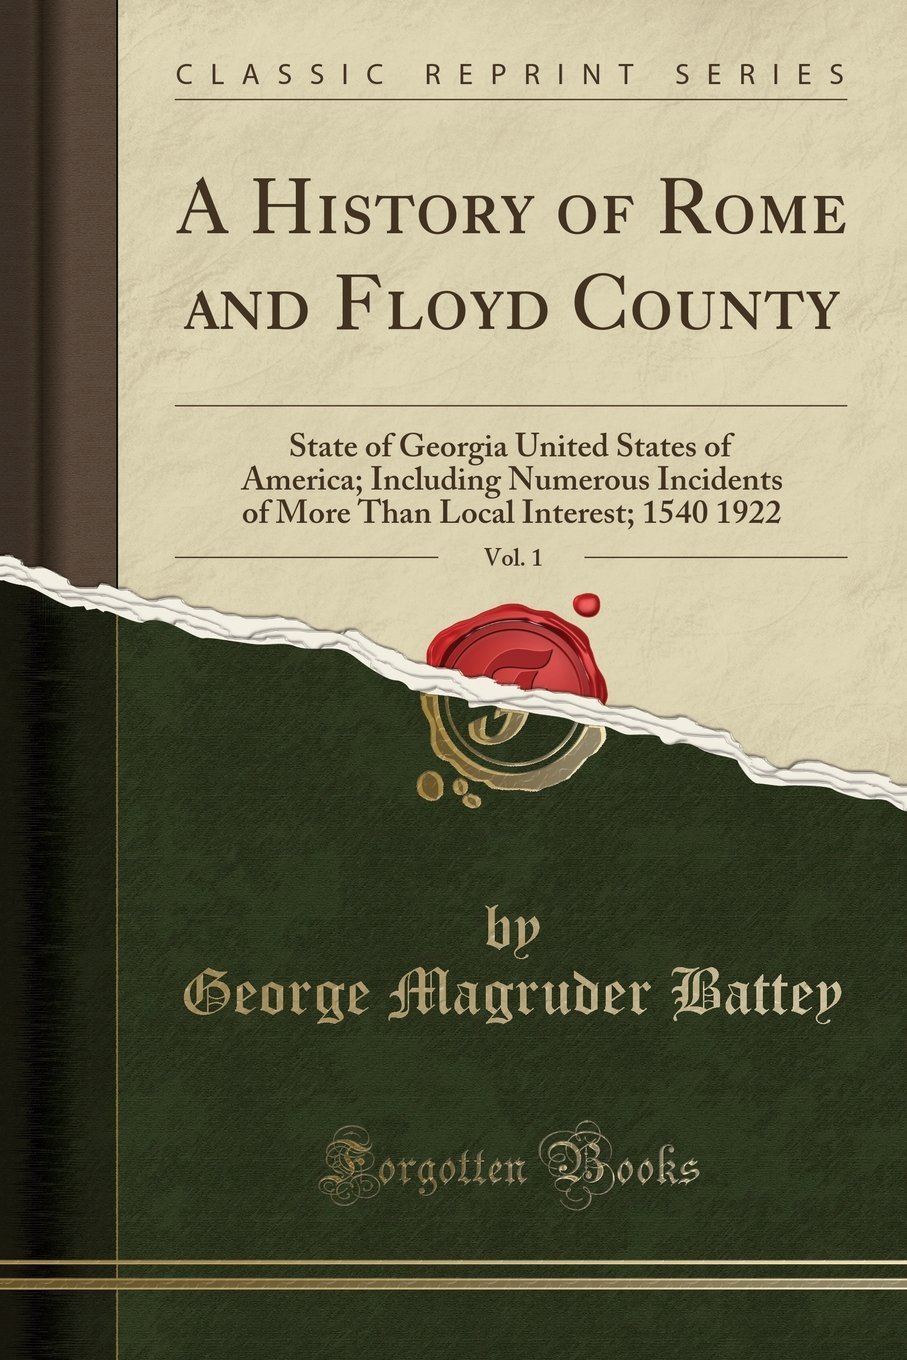 Download A History of Rome and Floyd County, Vol. 1: State of Georgia United States of America; Including Numerous Incidents of More Than Local Interest; 1540 1922 (Classic Reprint) PDF